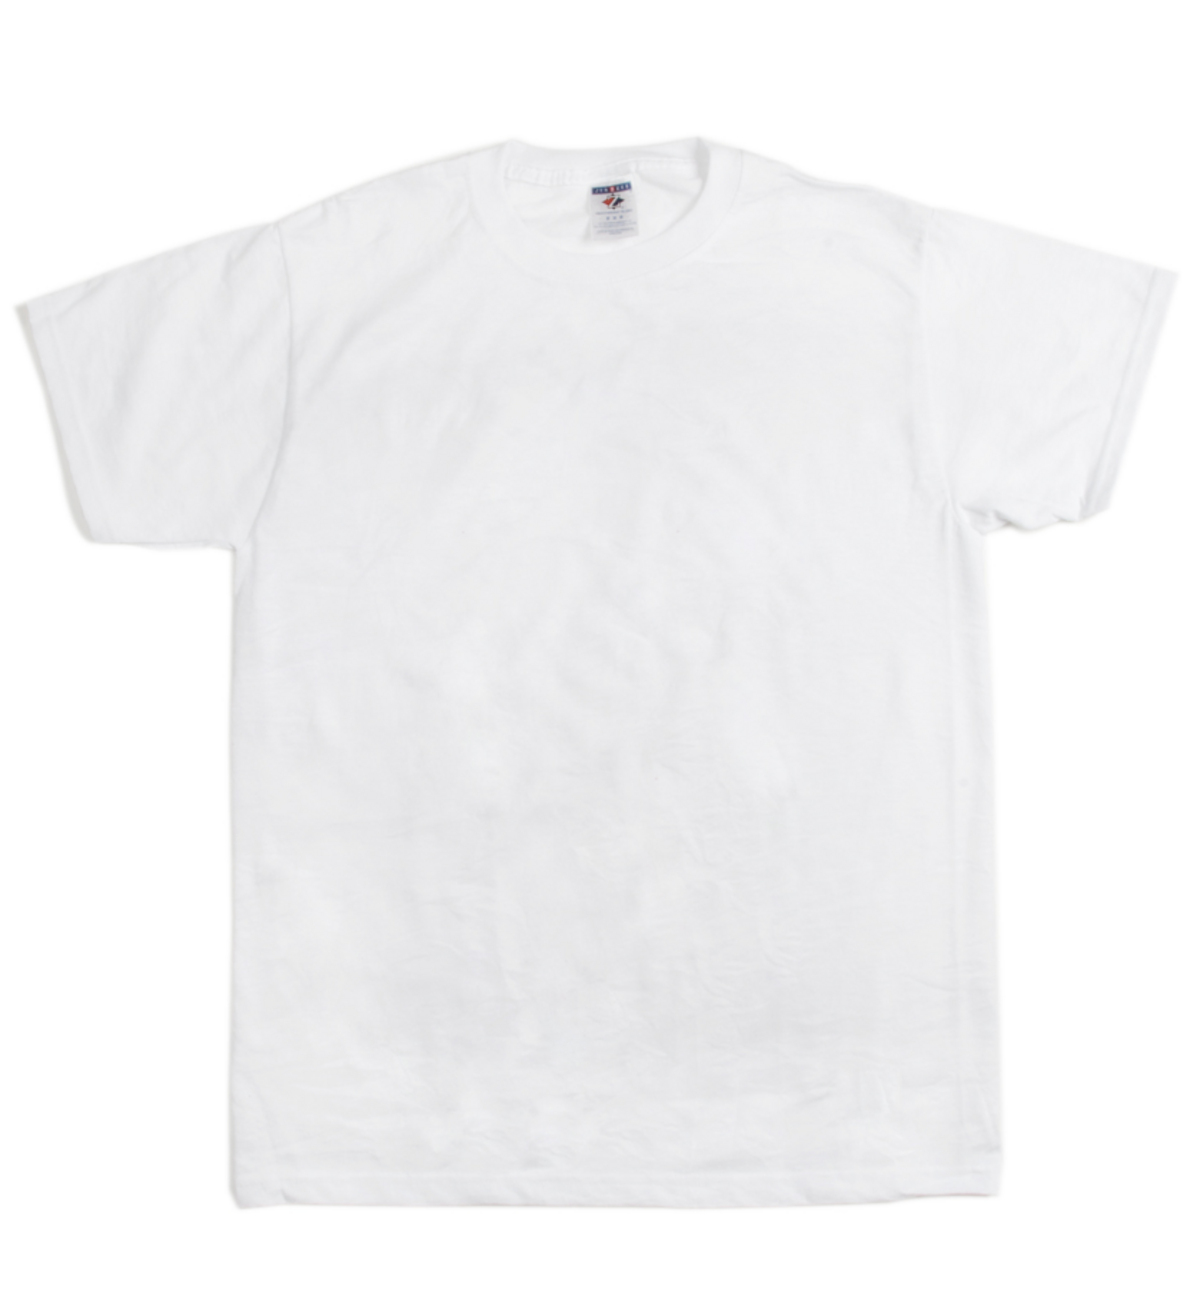 Jerzees Adult T-shirt Medium, White